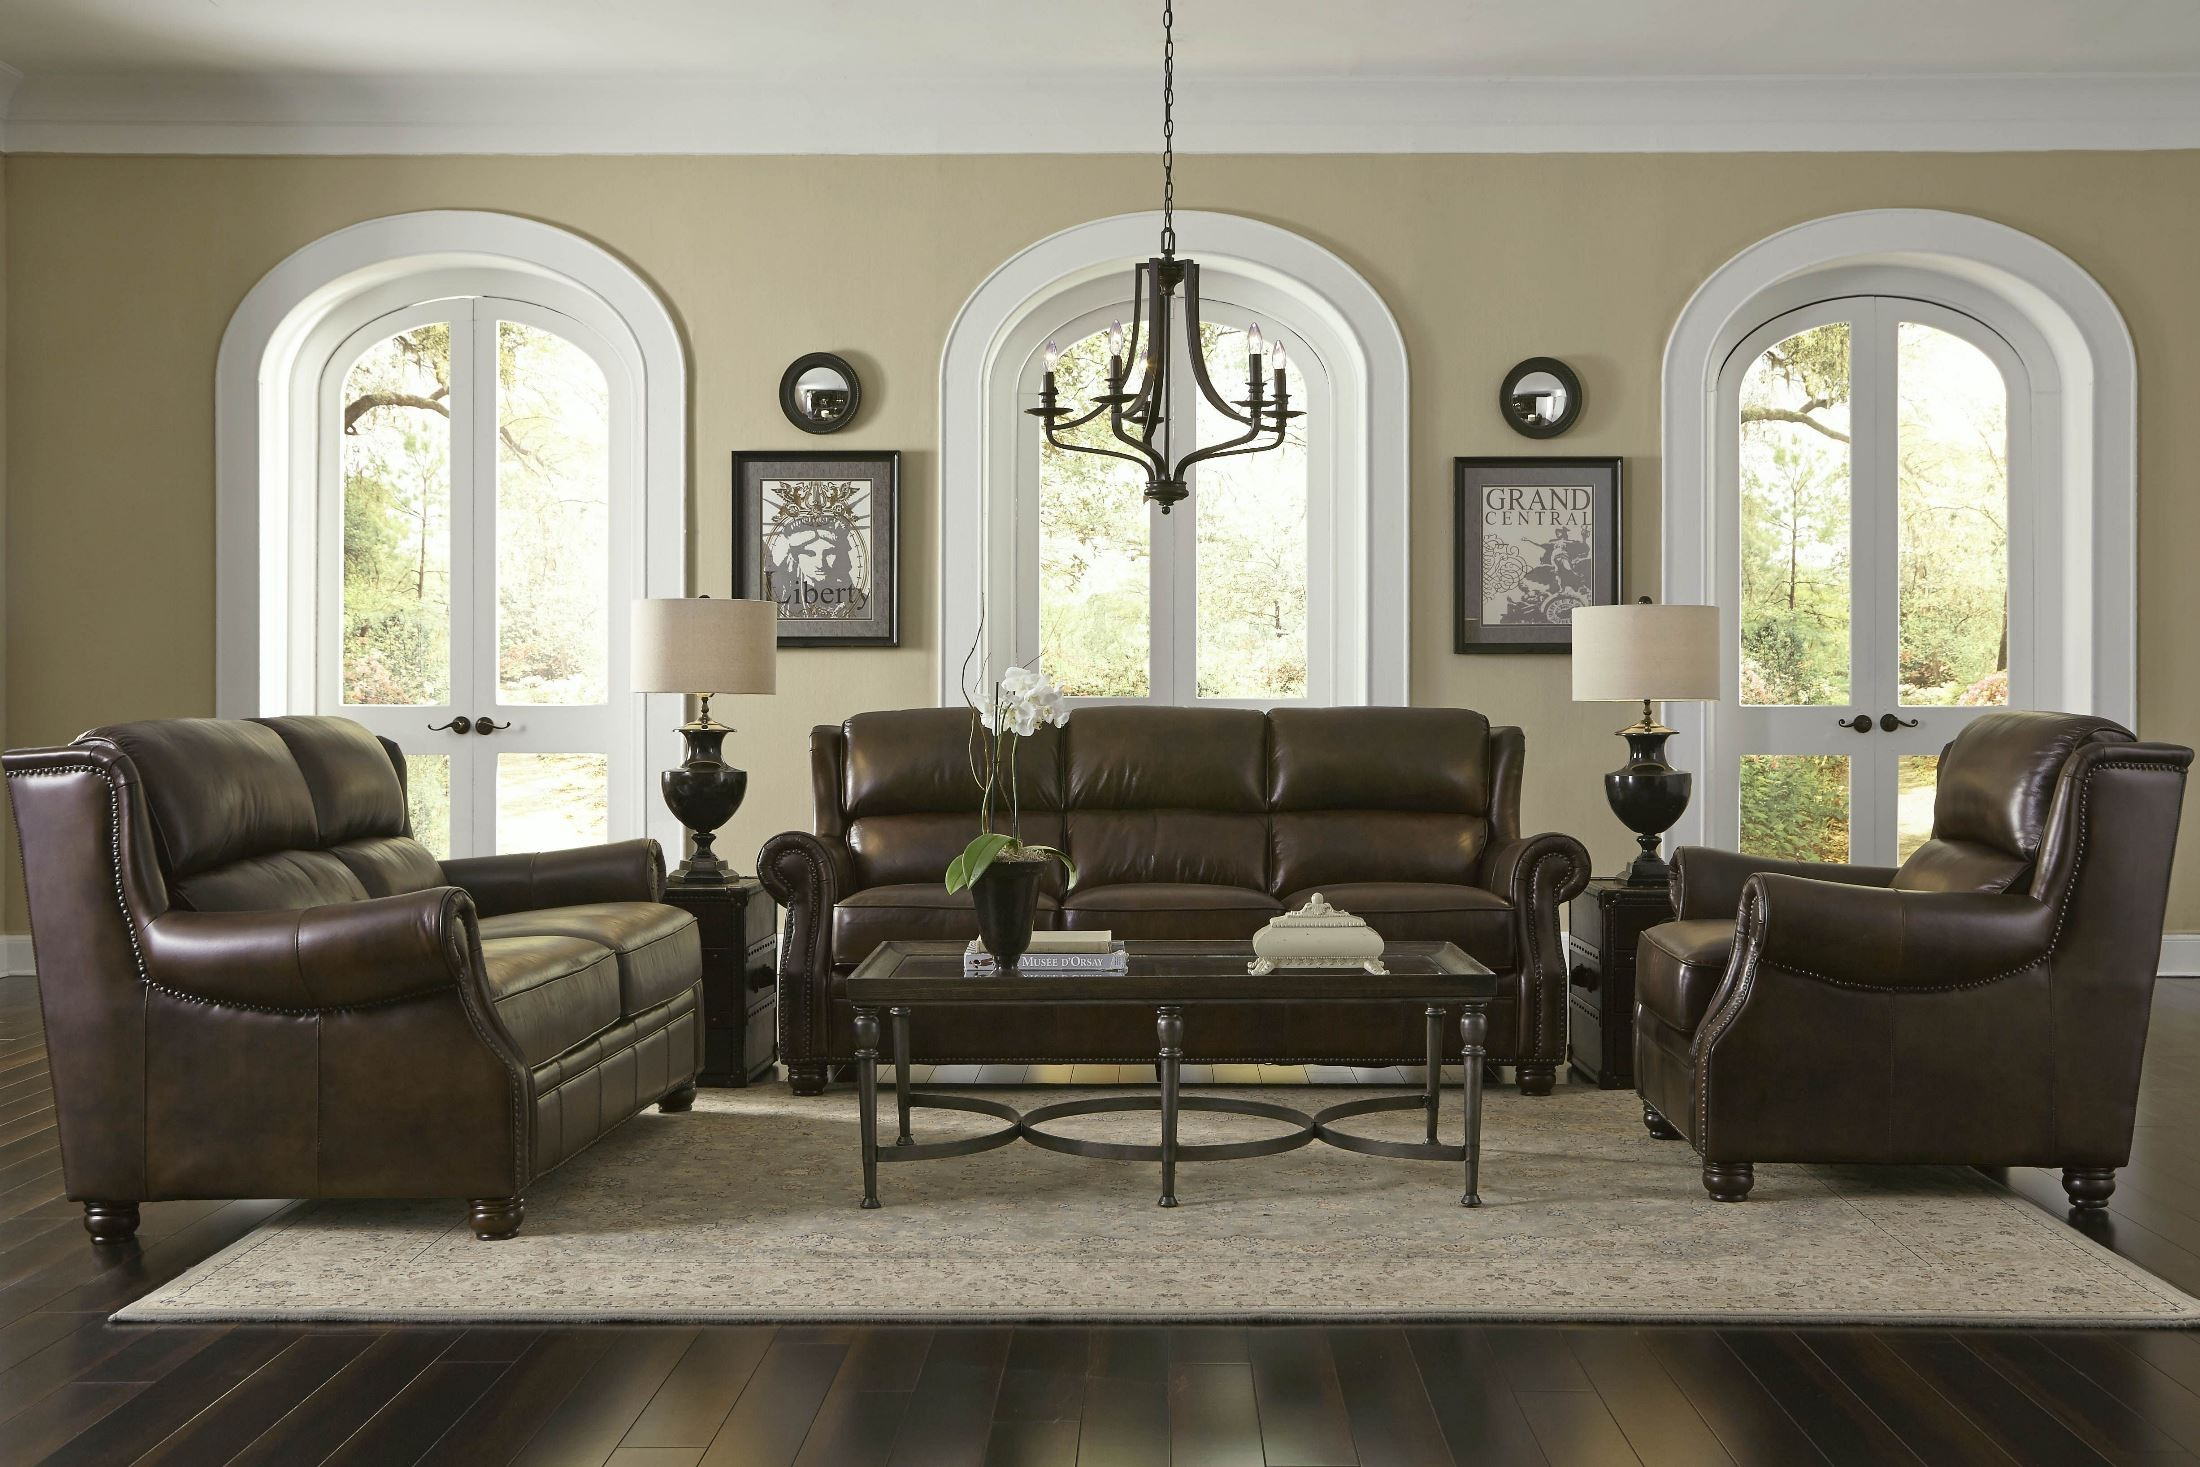 Appalachian Rustic Savauge Leather Living Room Set From Lazzaro WH